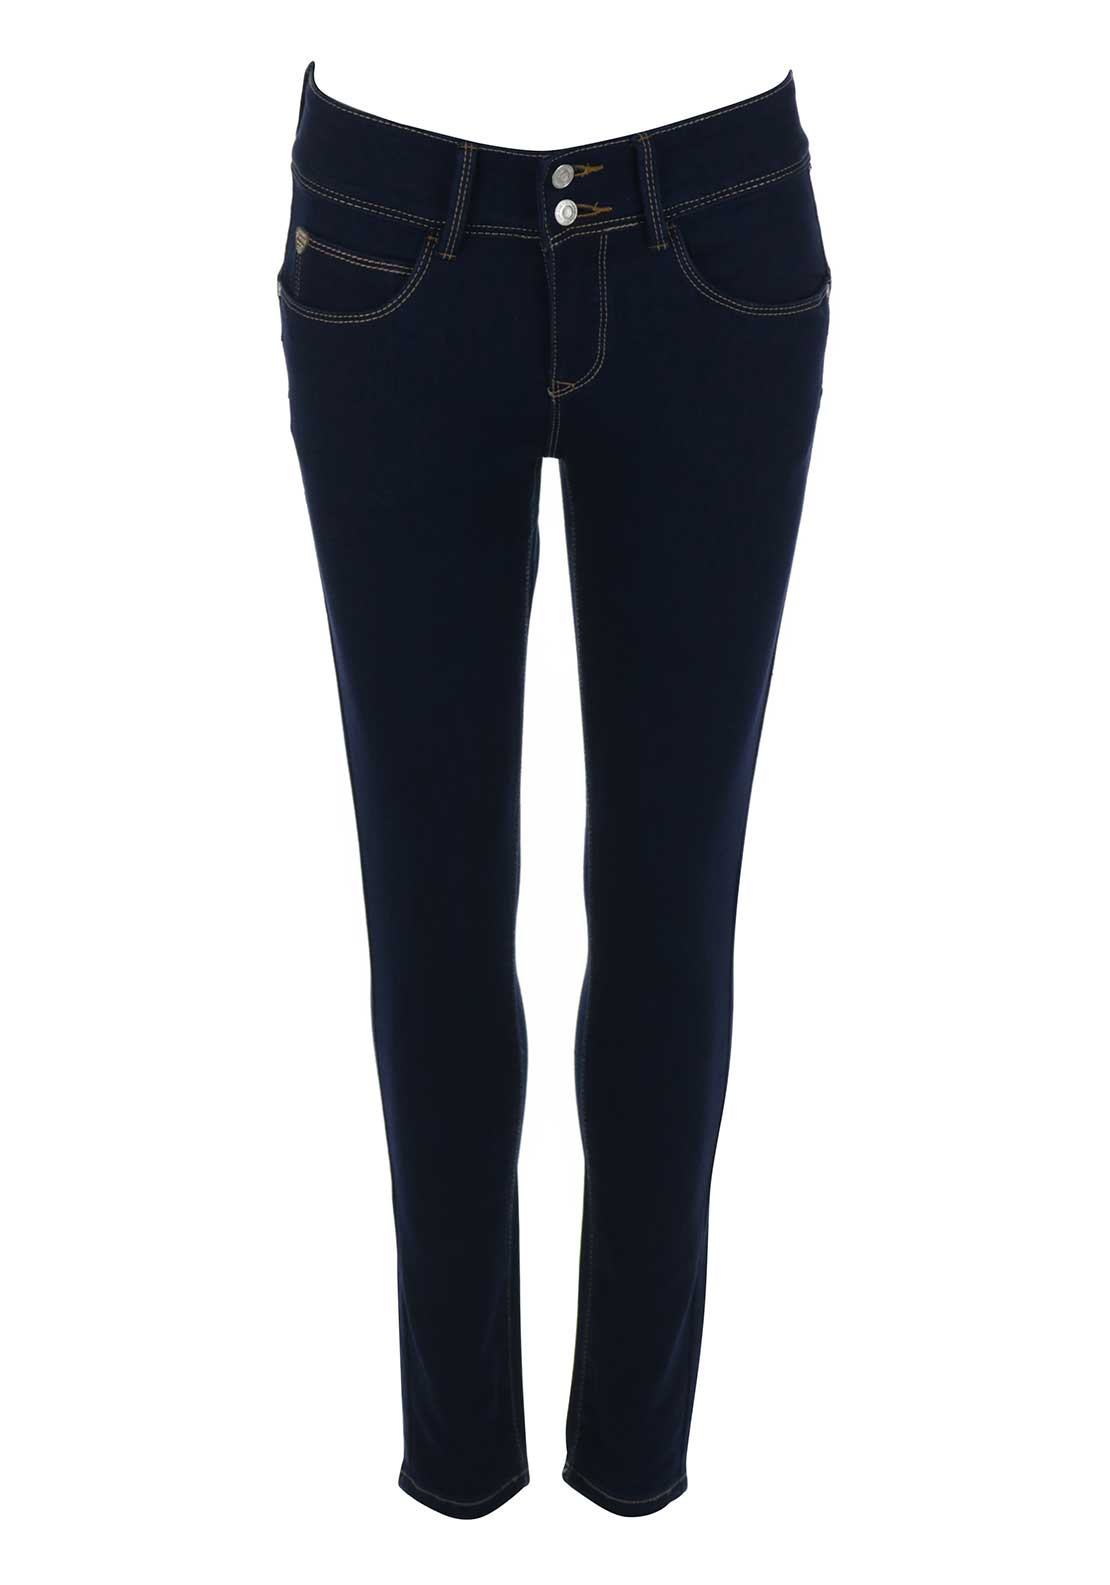 Rant & Rave Paloma High Waist Skinny Jeans, Blue Denim